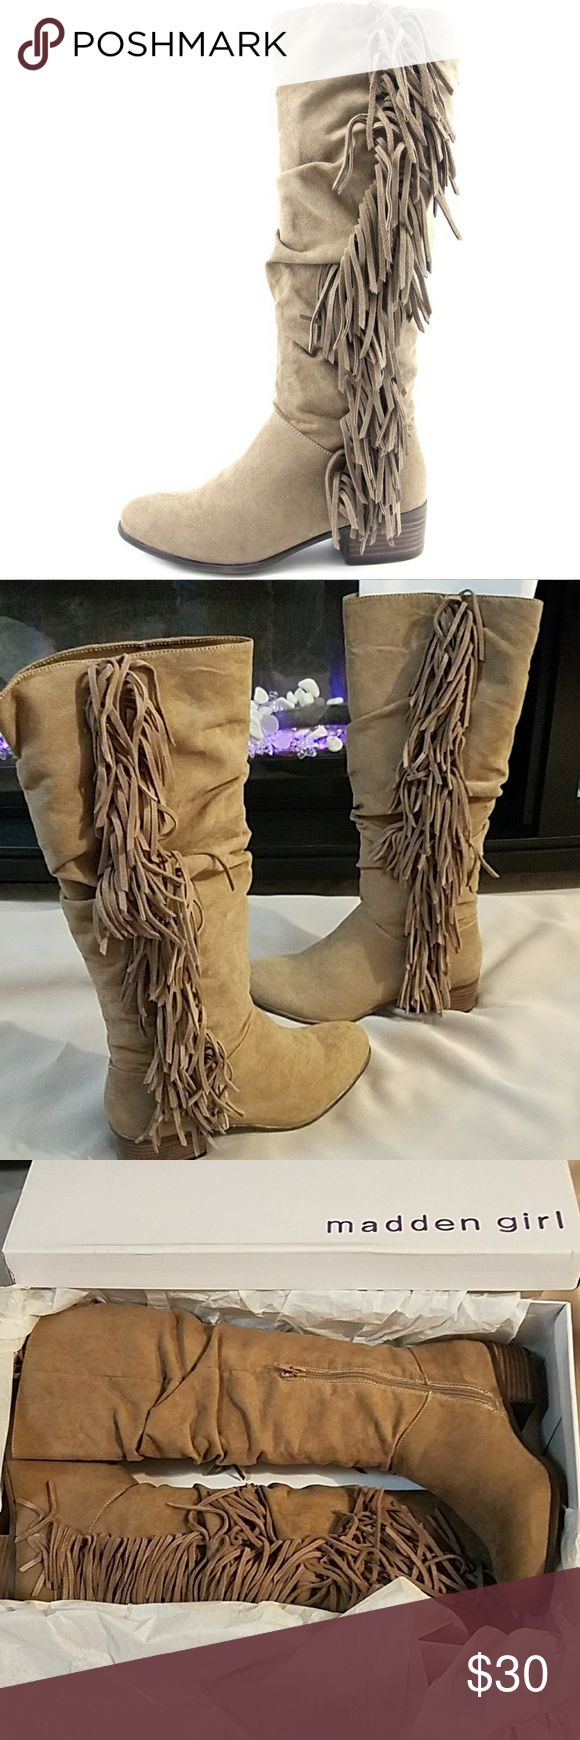 """🆕MADDEN GIRL BOOT Madden Girl Pondo tan knee high boot with beautiful waterfall fringe along the side. Faux suede upper and man made outsole.  - 1.5"""" heel - Shaft measures 15.25"""" - Circumference measures 15"""" Madden Girl Shoes Heeled Boots"""